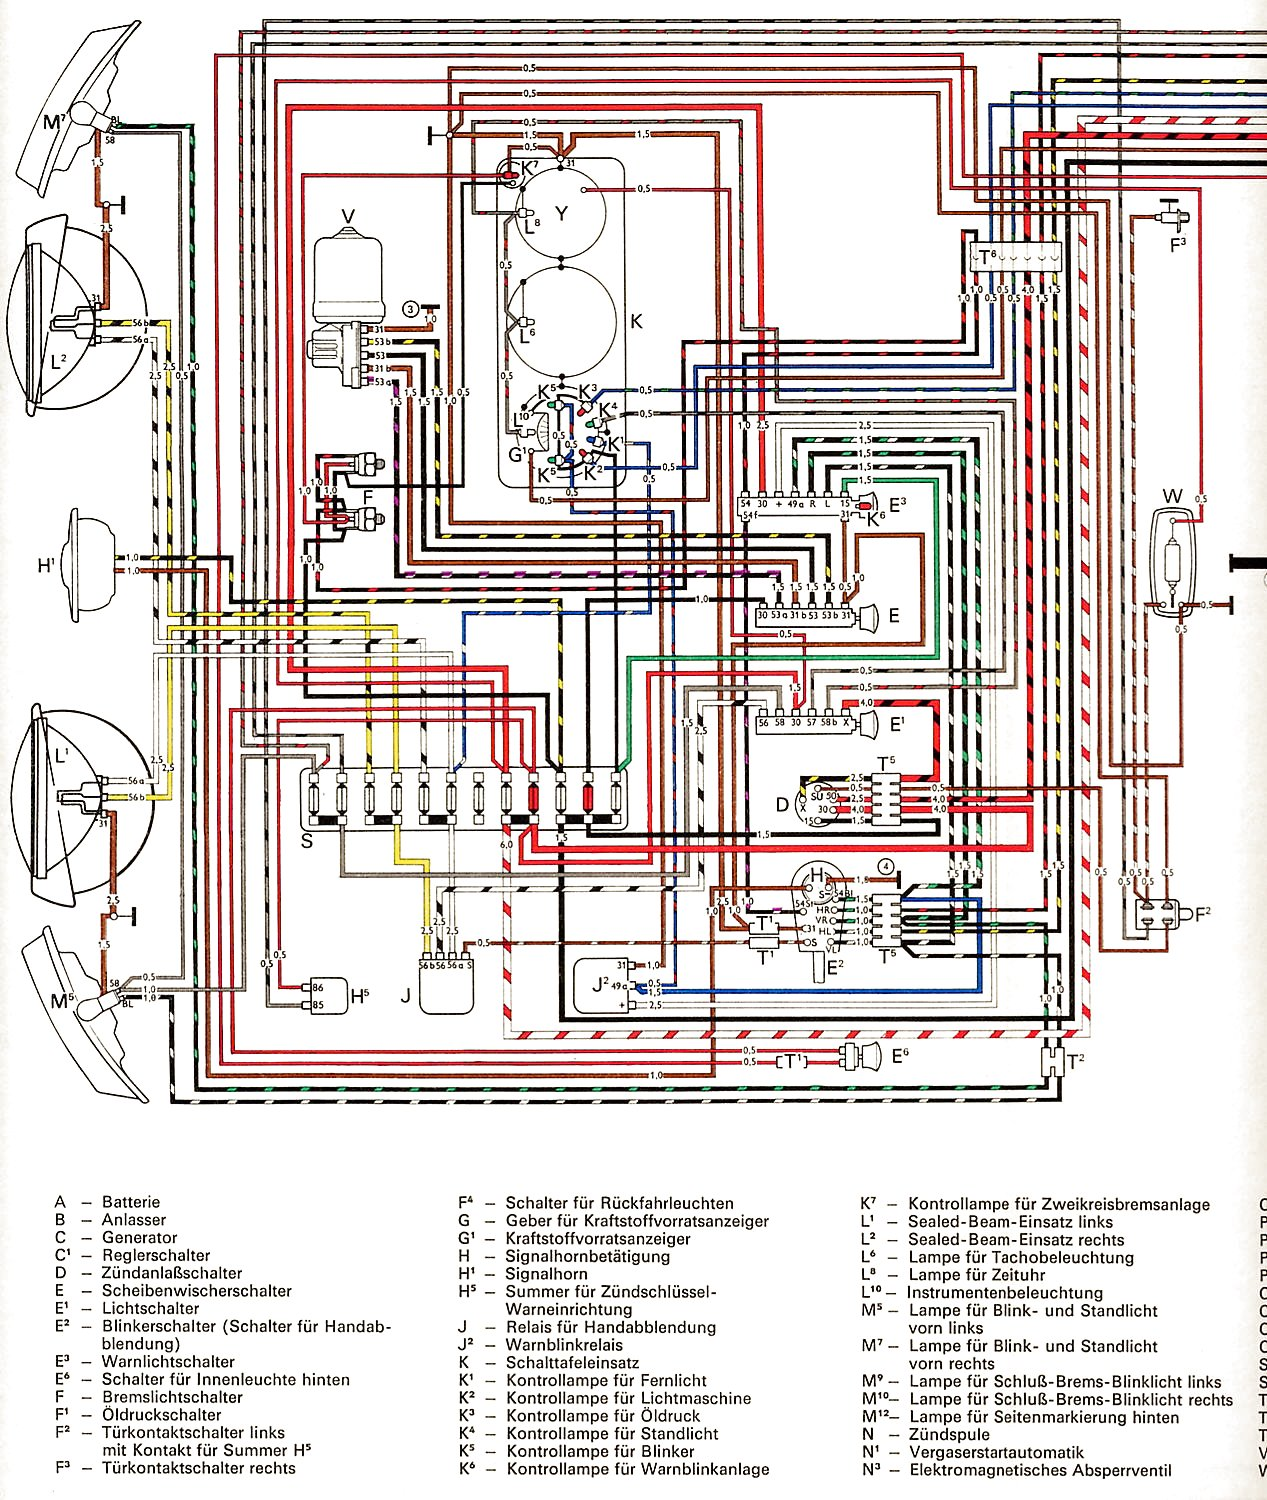 Volkswagen Wiring Diagrams For Dummies Diagram Will Be A 1970 Gmc Vintagebus Com Vw Bus And Other Rh 1 Way Switch Electrical